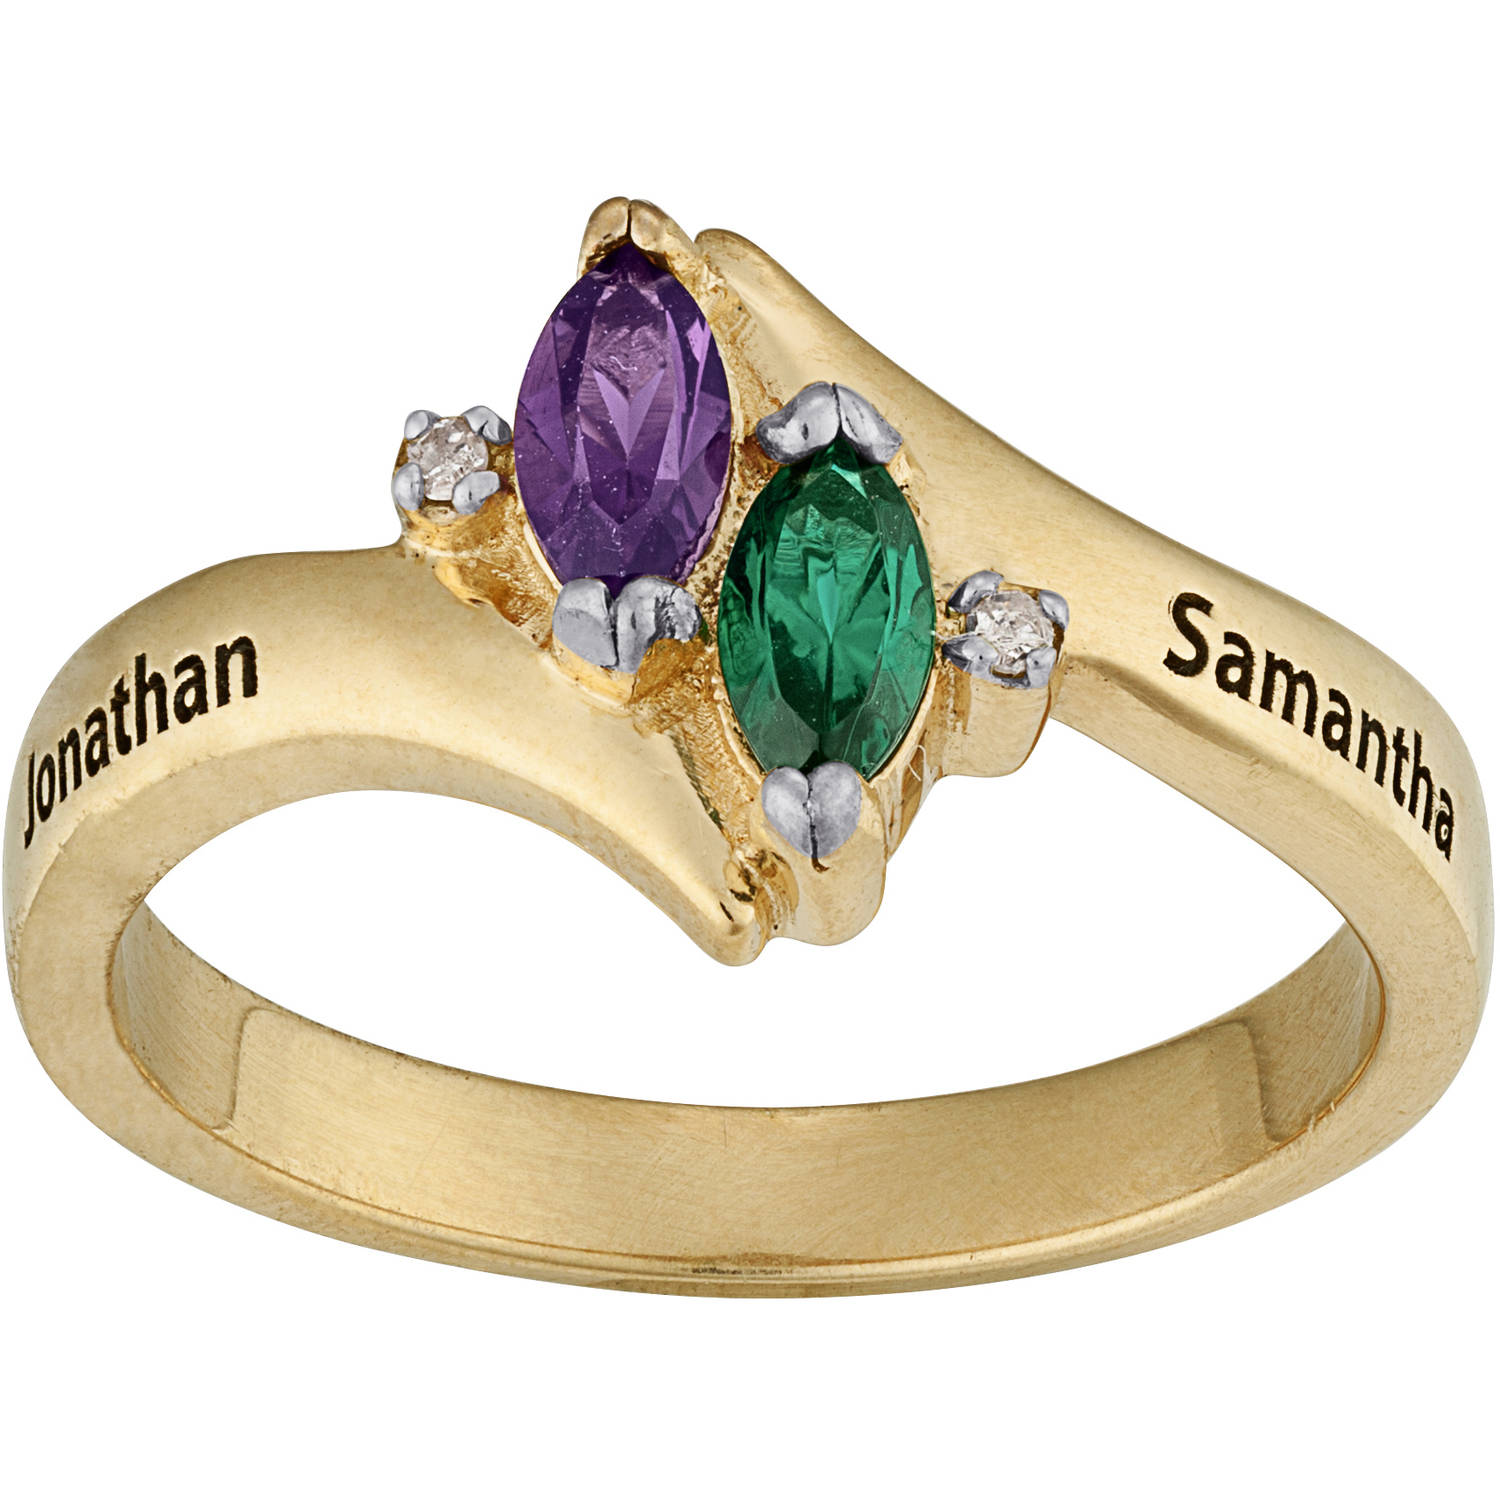 Personalized Couples Marquise Birthstone Name Ring with Diamond Accent